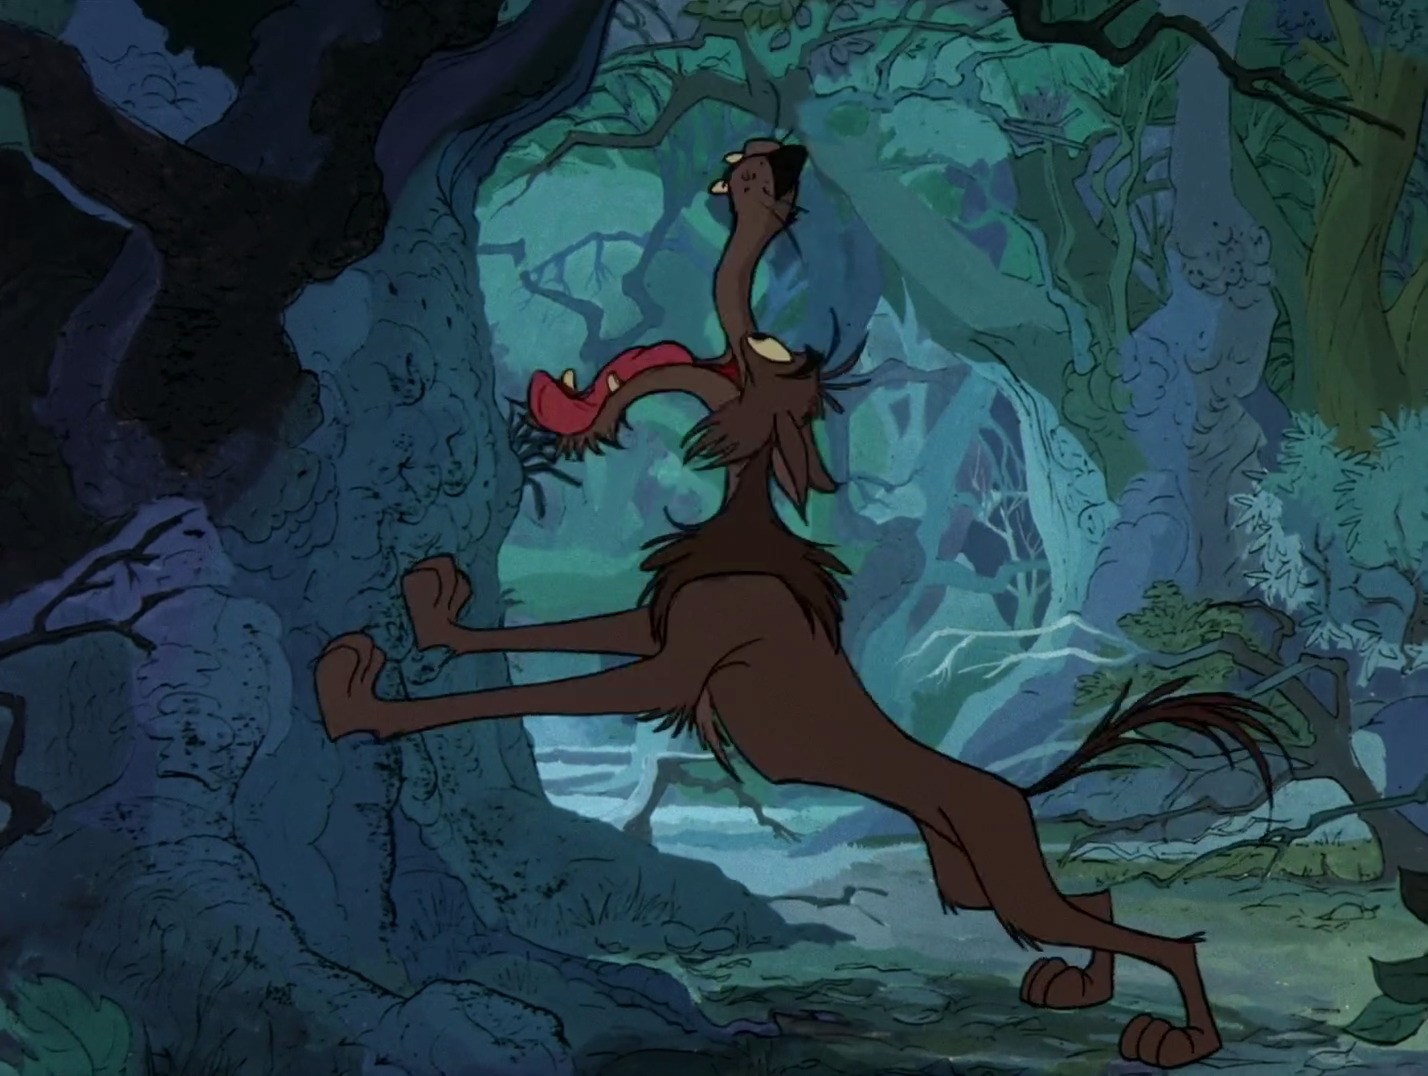 File:The-Wolf-from-The-sword-in-a-stone-classic-disney-22308990-629-478.jpg